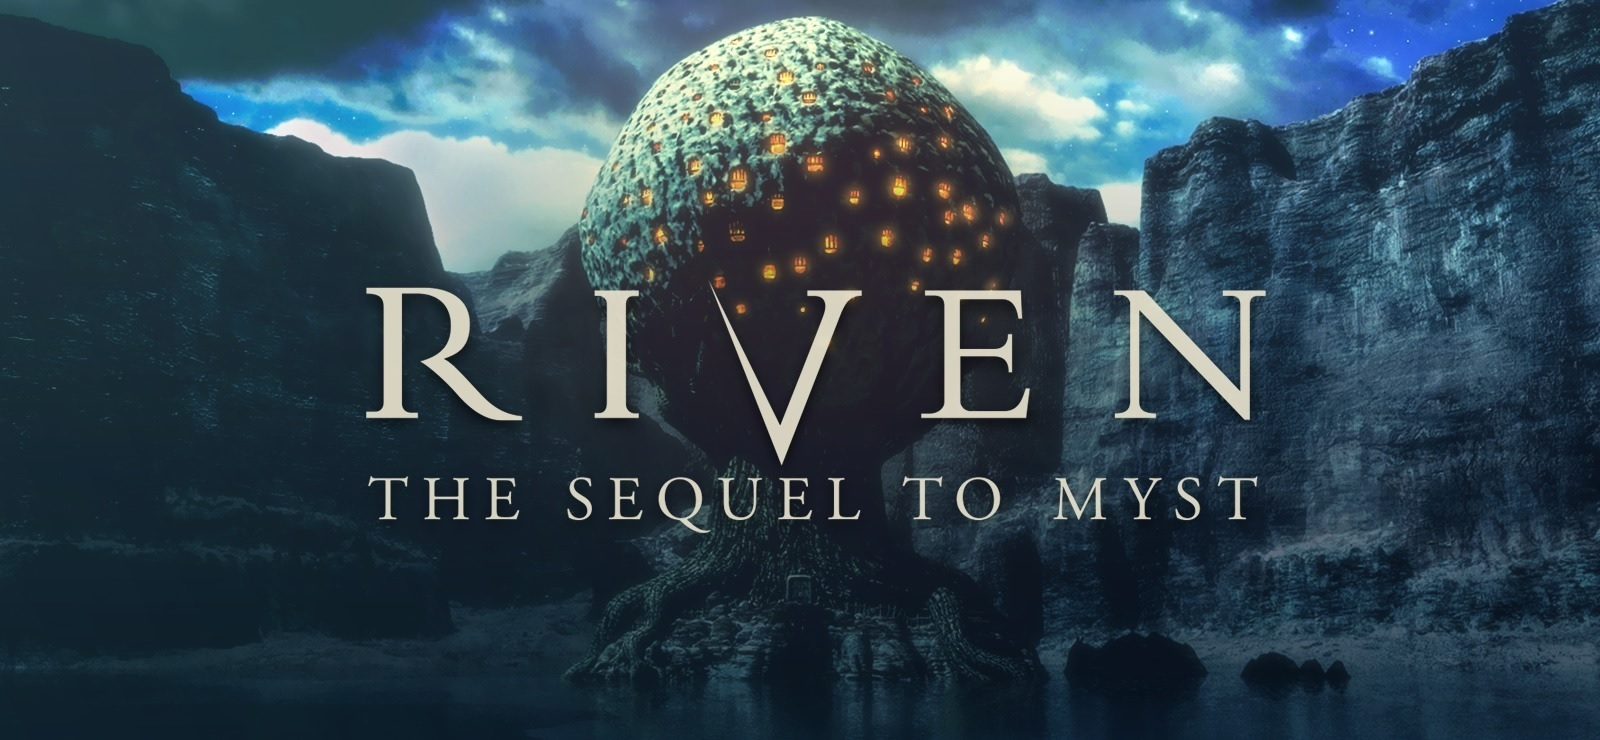 Riven_The_Sequel_to_Myst_1